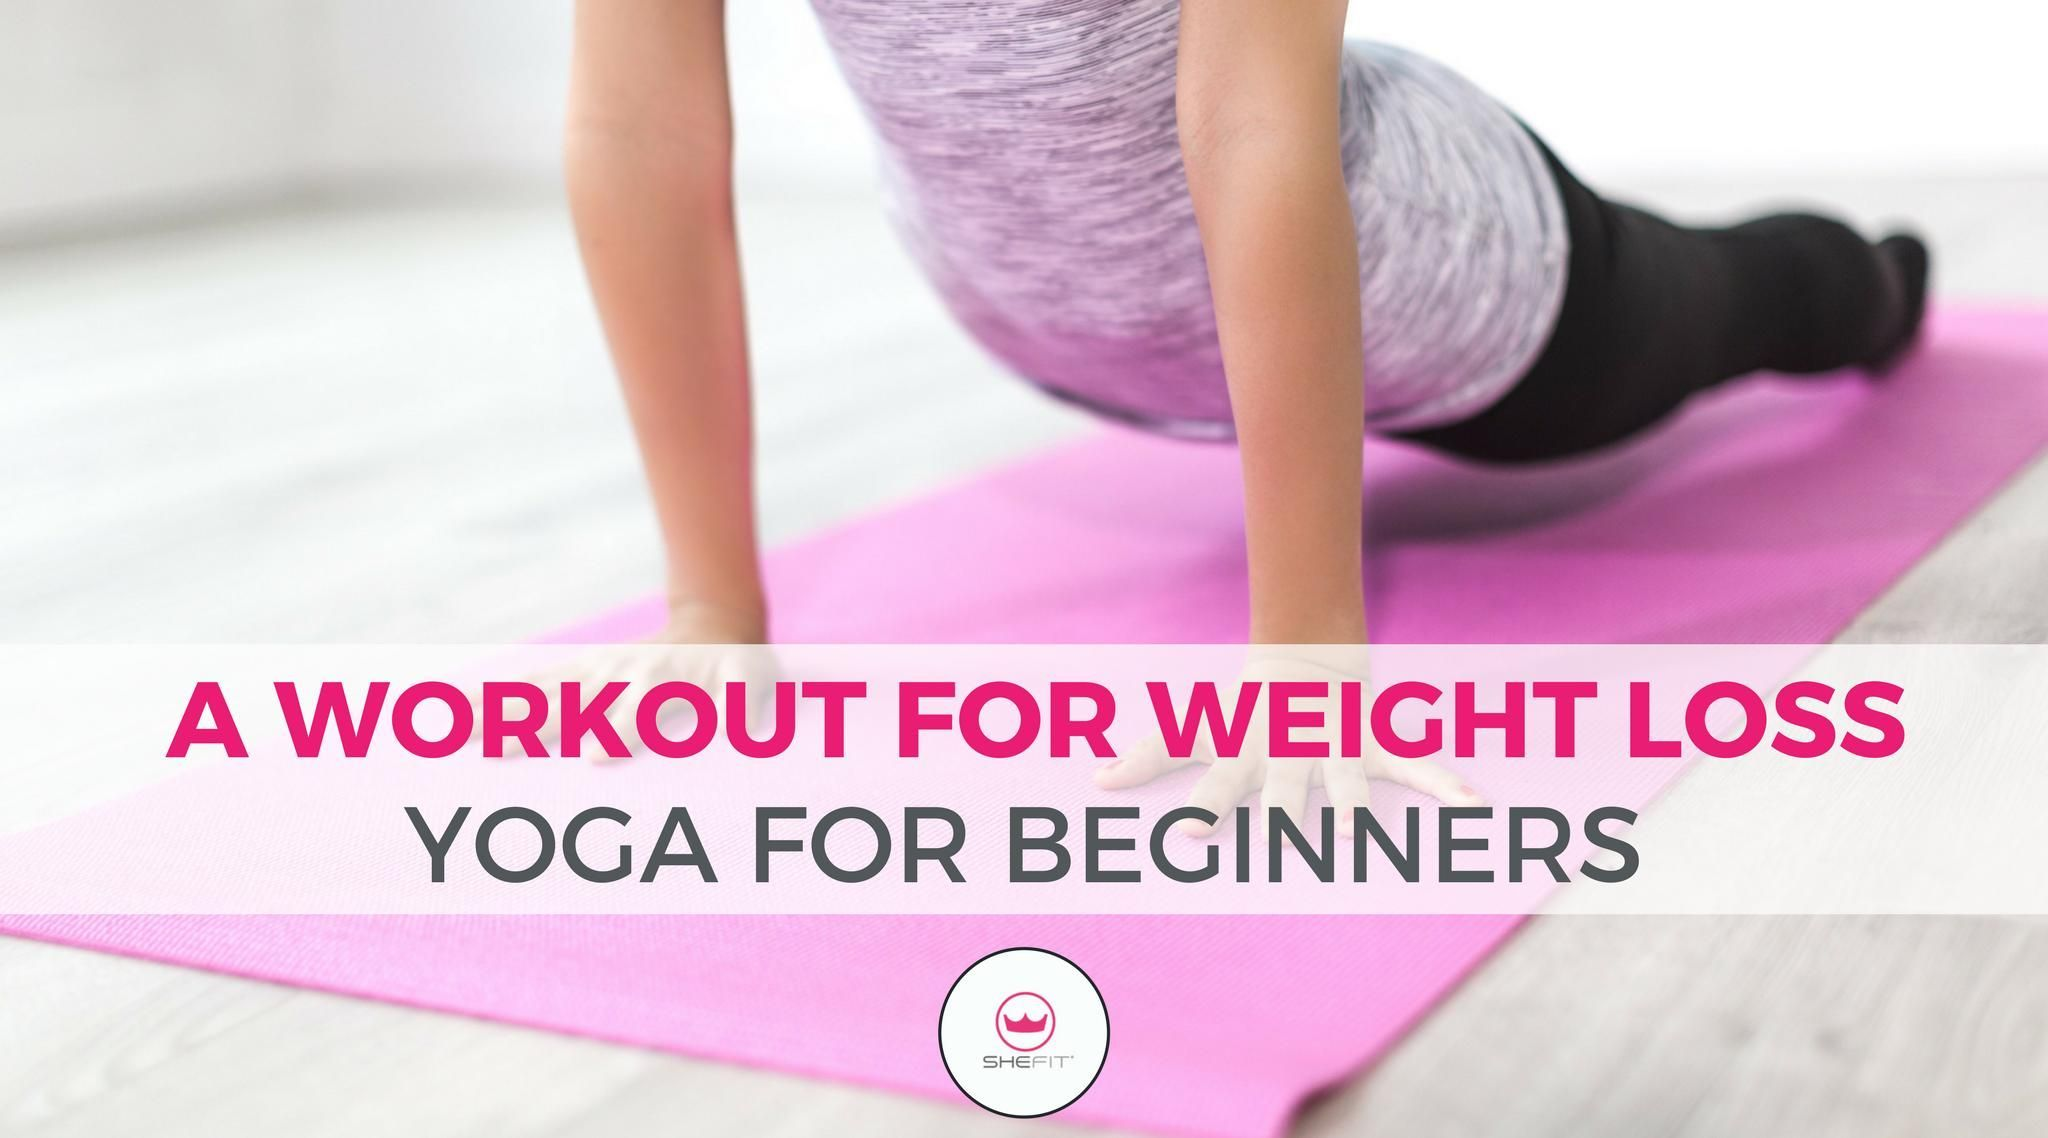 Yoga for Beginners: A Workout for Weight Loss